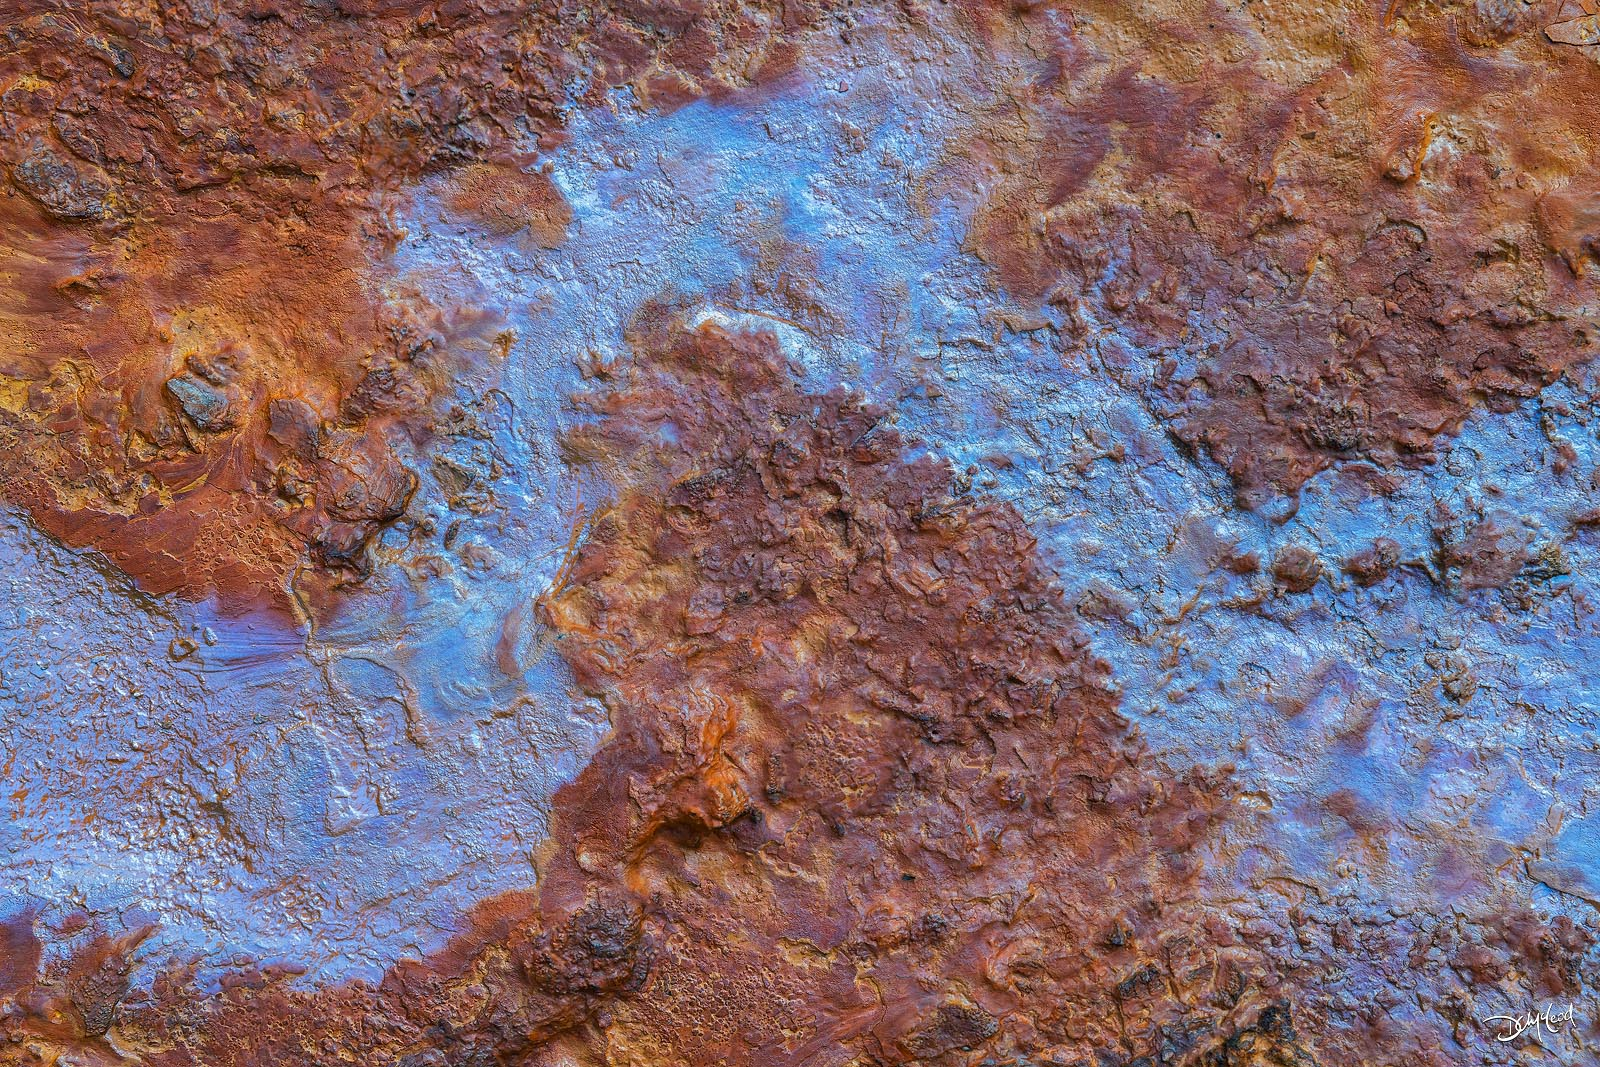 Mineral rich wet soil with brown and blue coloring at the Paint Pots, Kootenay National Park, British Columbia, Canada.